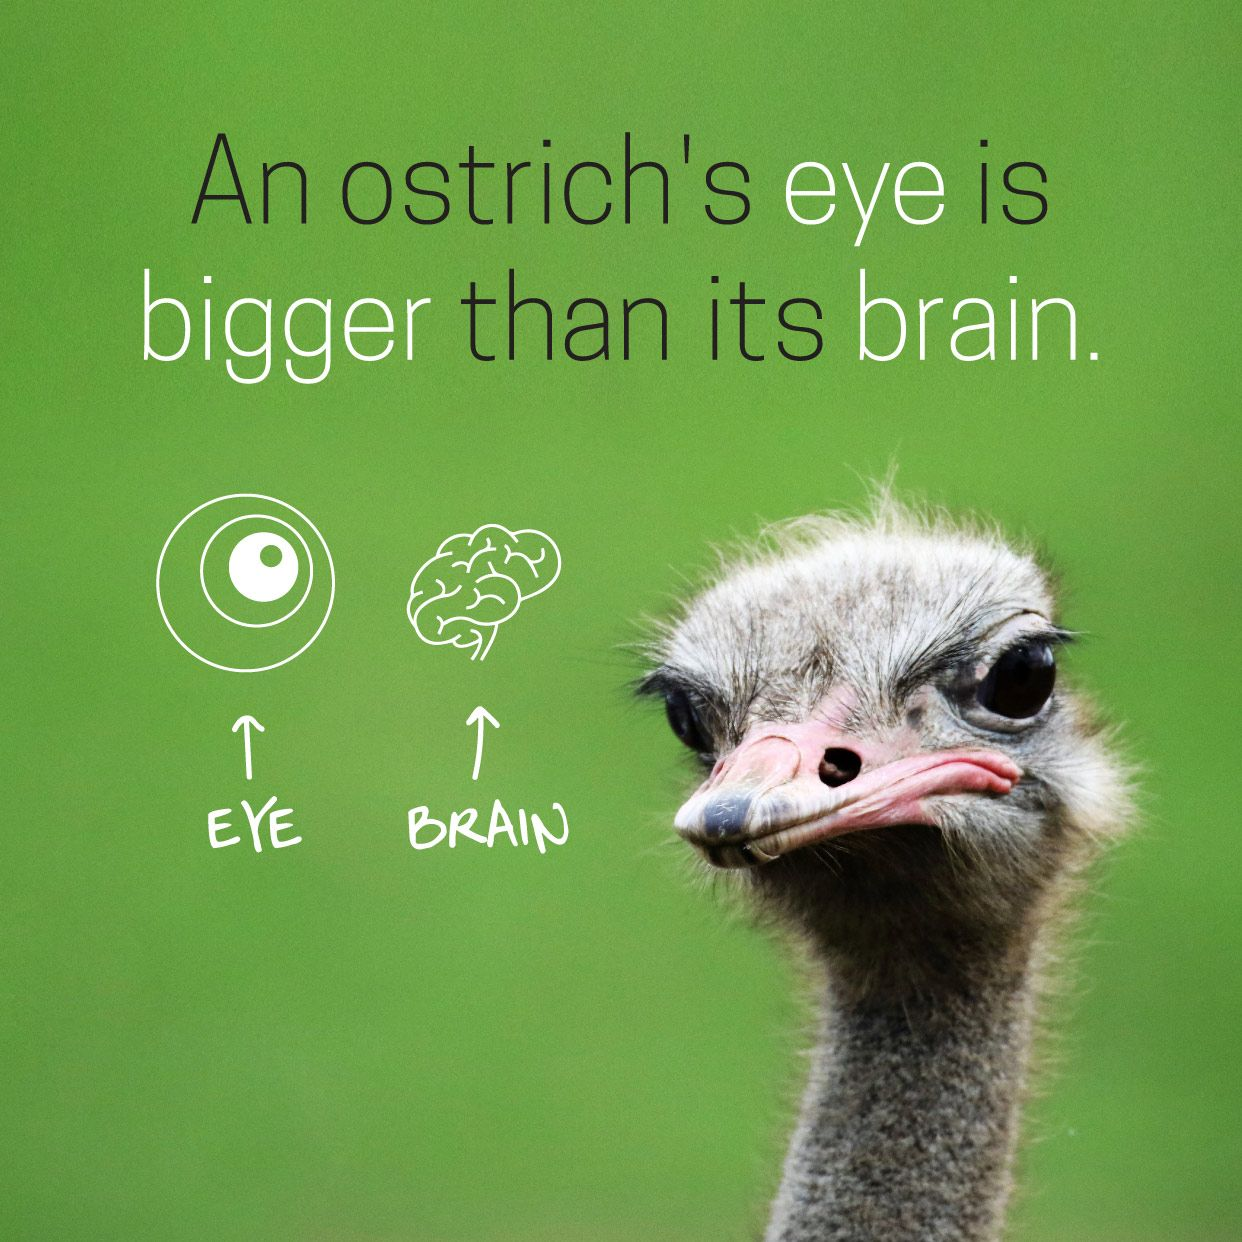 Did you know that an ostrichs eye is bigger than its